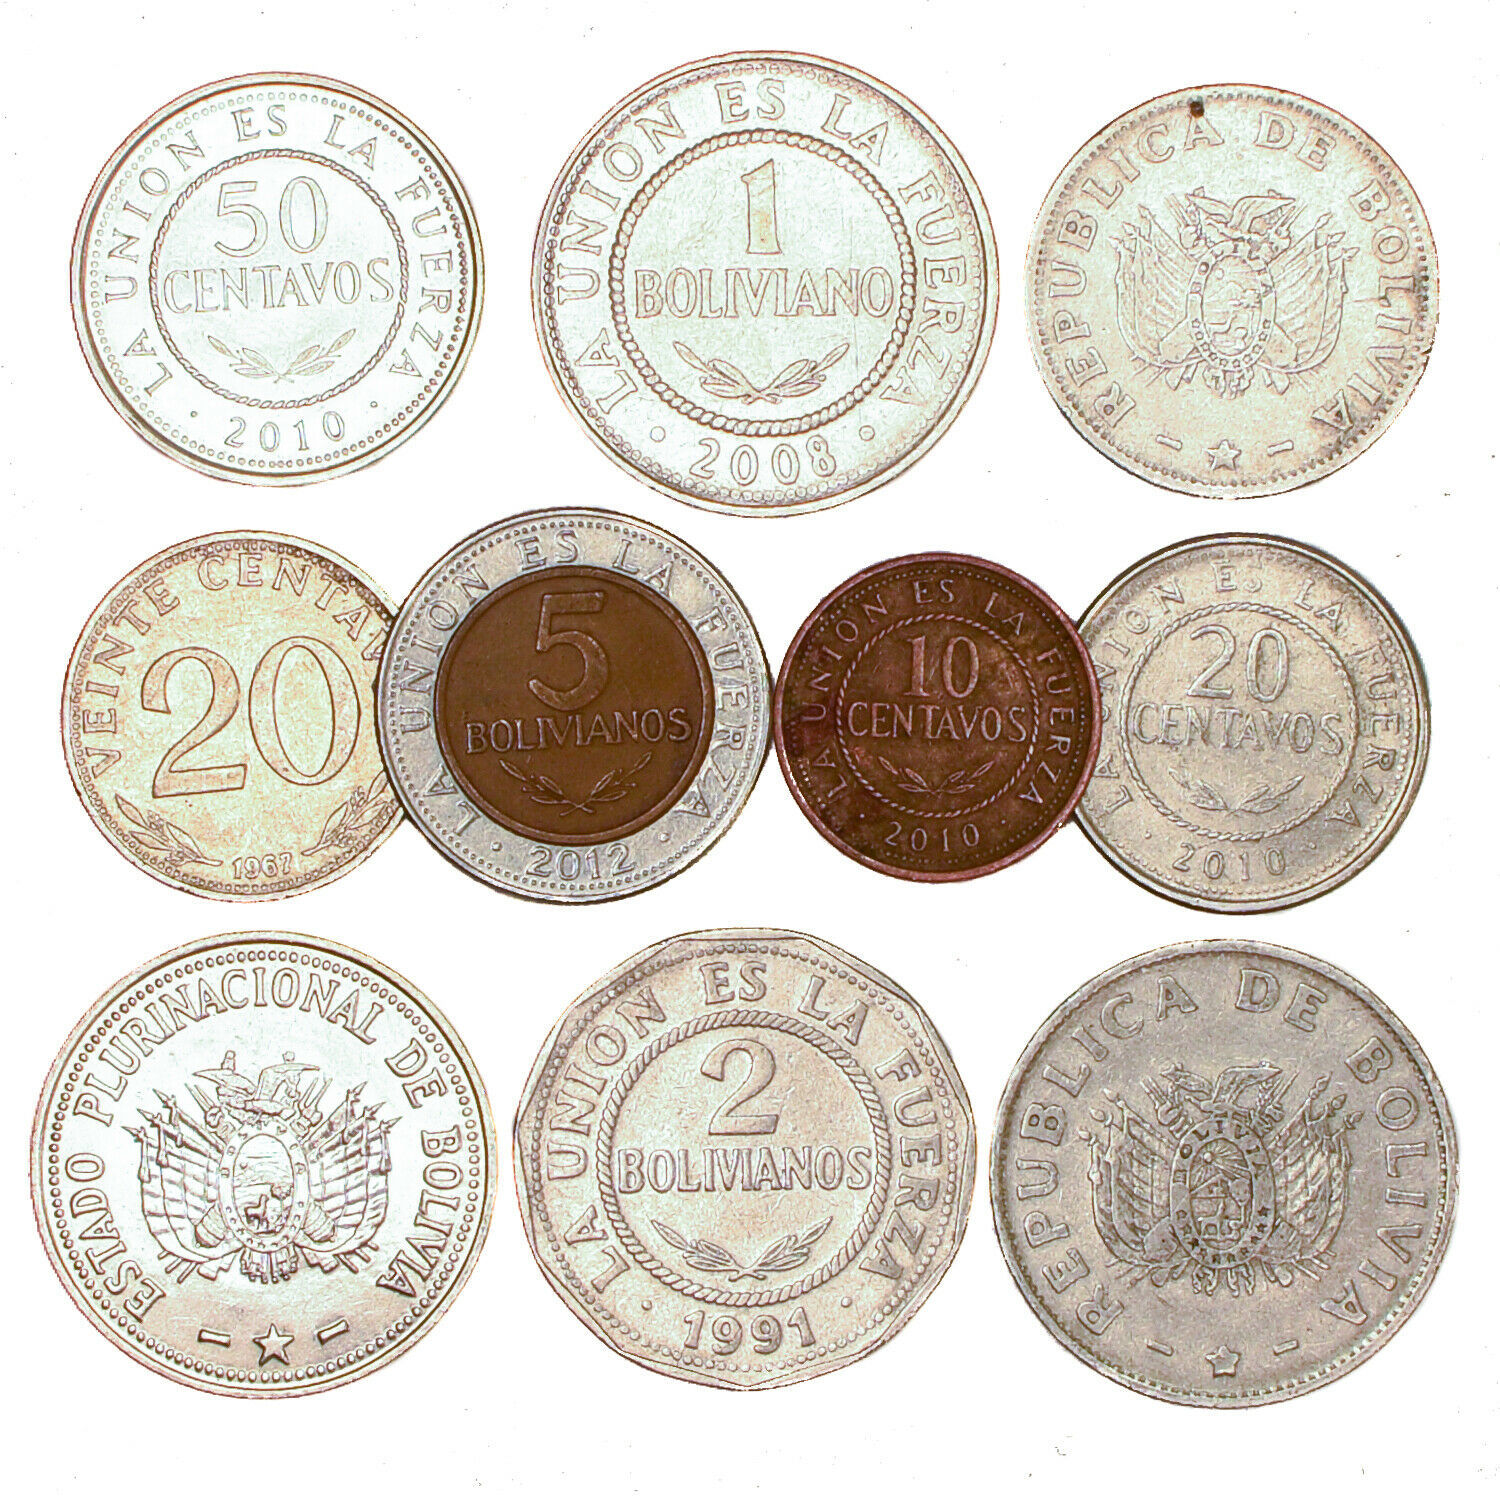 BOLIVIA COINS, SOUTH AMERICA 10 CENTAVOS - 5 BOLIVIANOS OLD COLLECTIBLE COINS